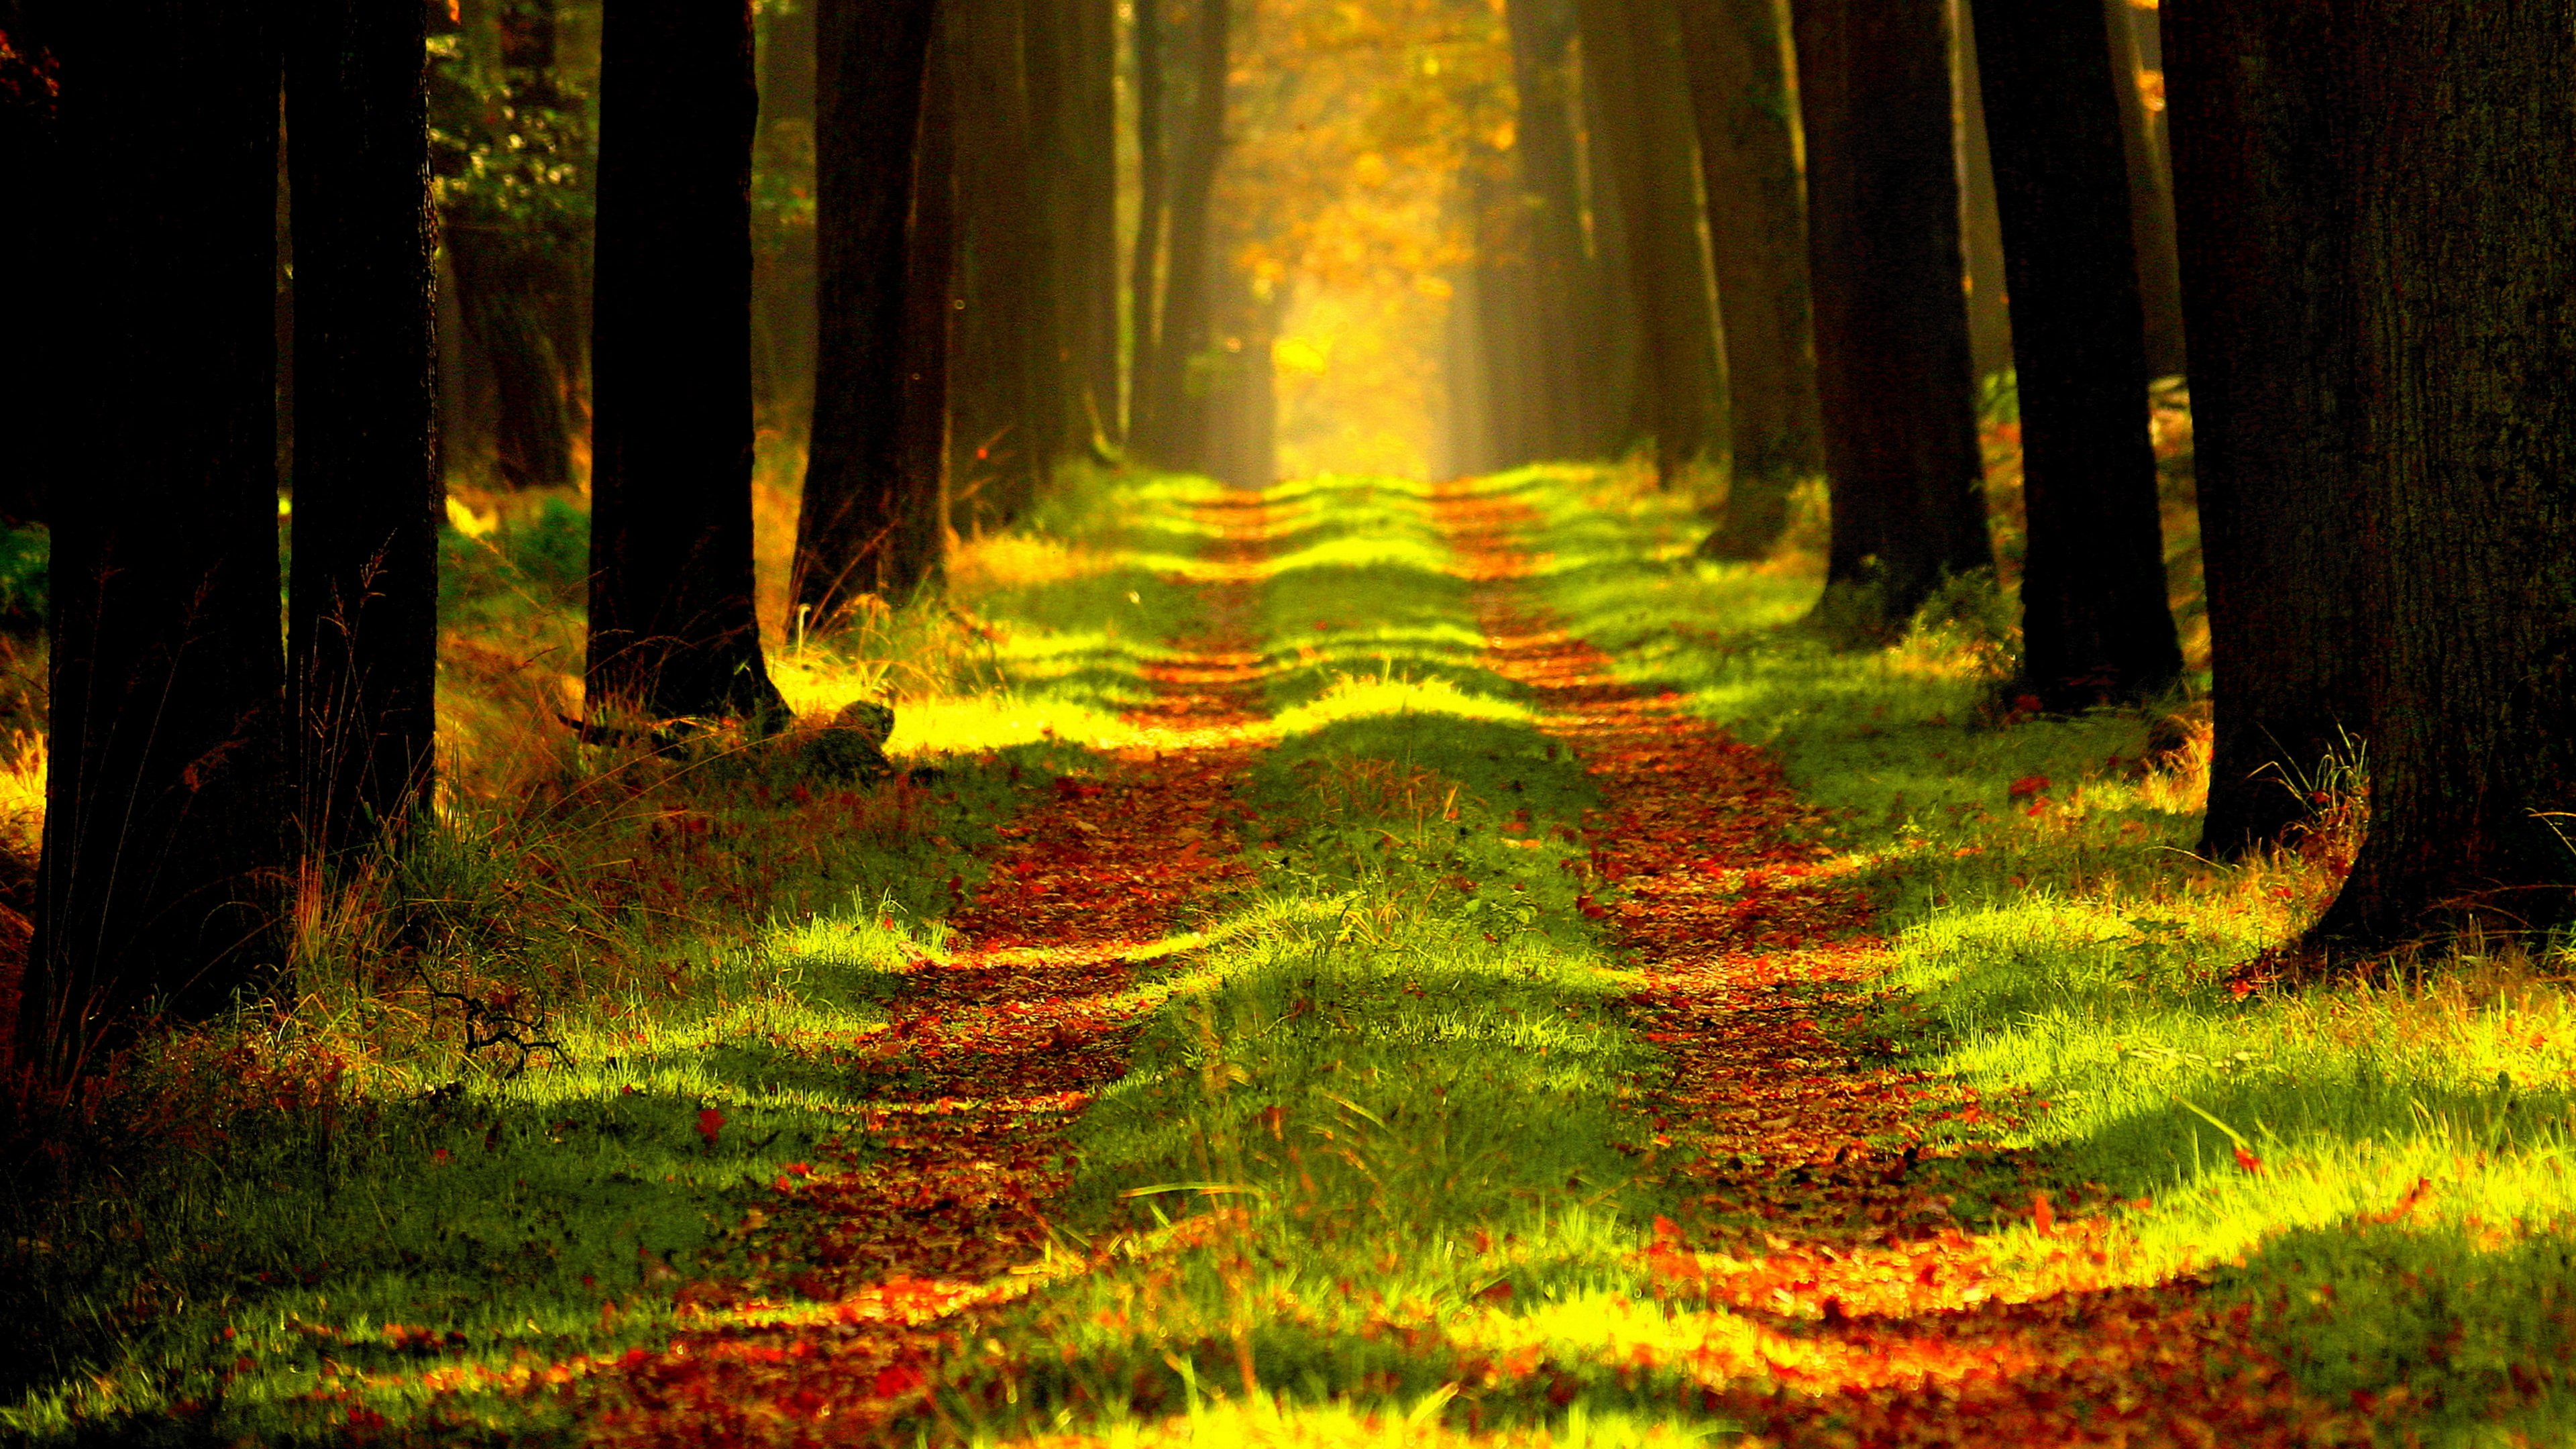 Iphone Android Desktop: Light Path Through The Trees Wallpaper